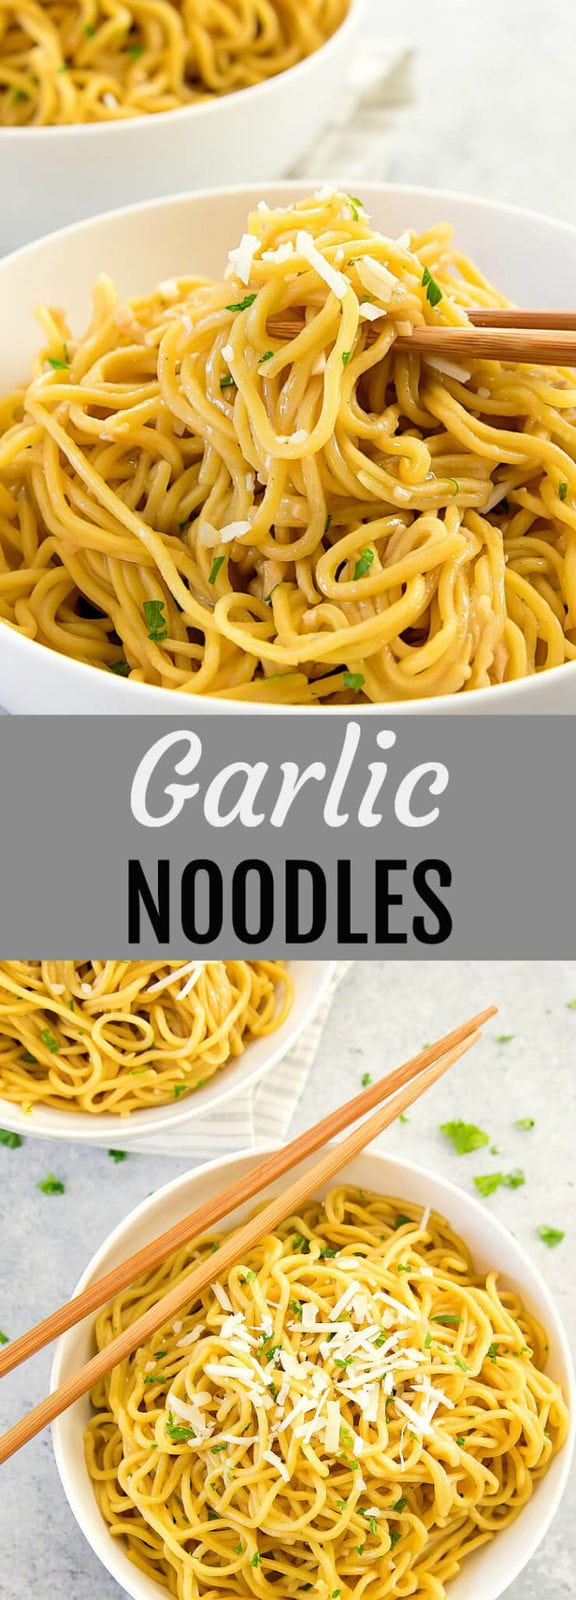 Garlic Noodles